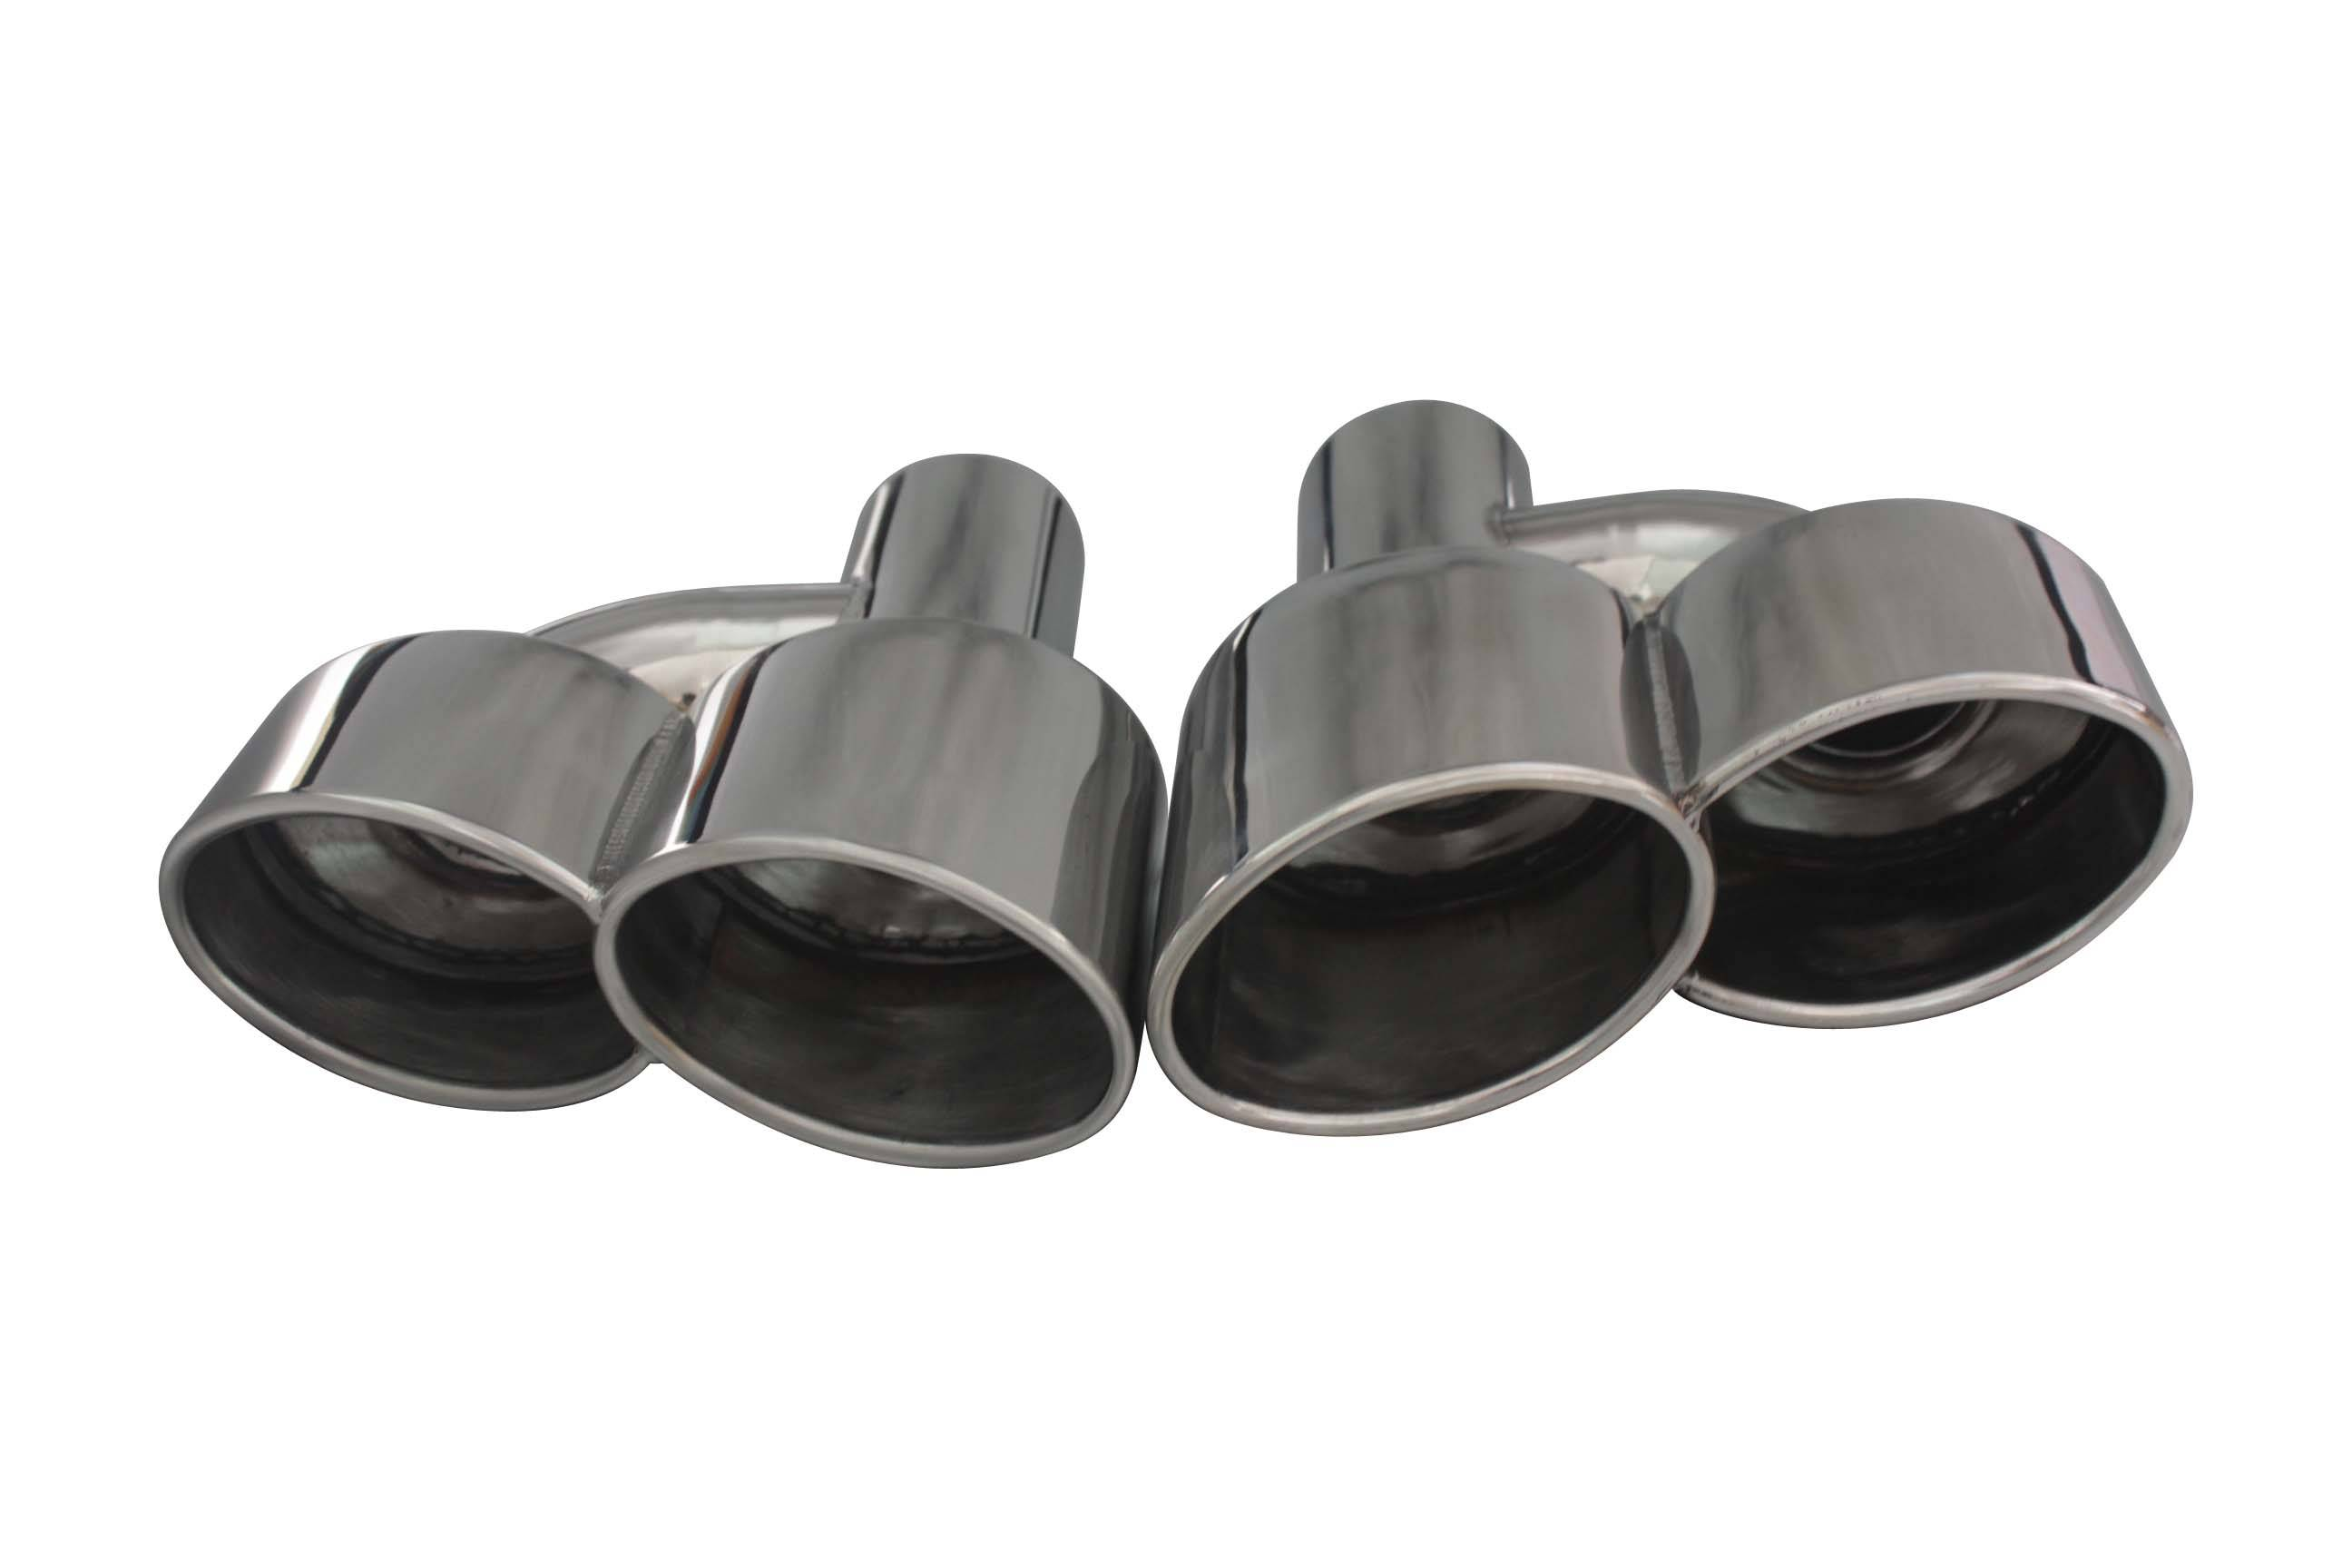 W221 W212 W204 W219 W218 Exhaust Tips Muffler Tail Pipe for Mercedes AMG S65 / S63